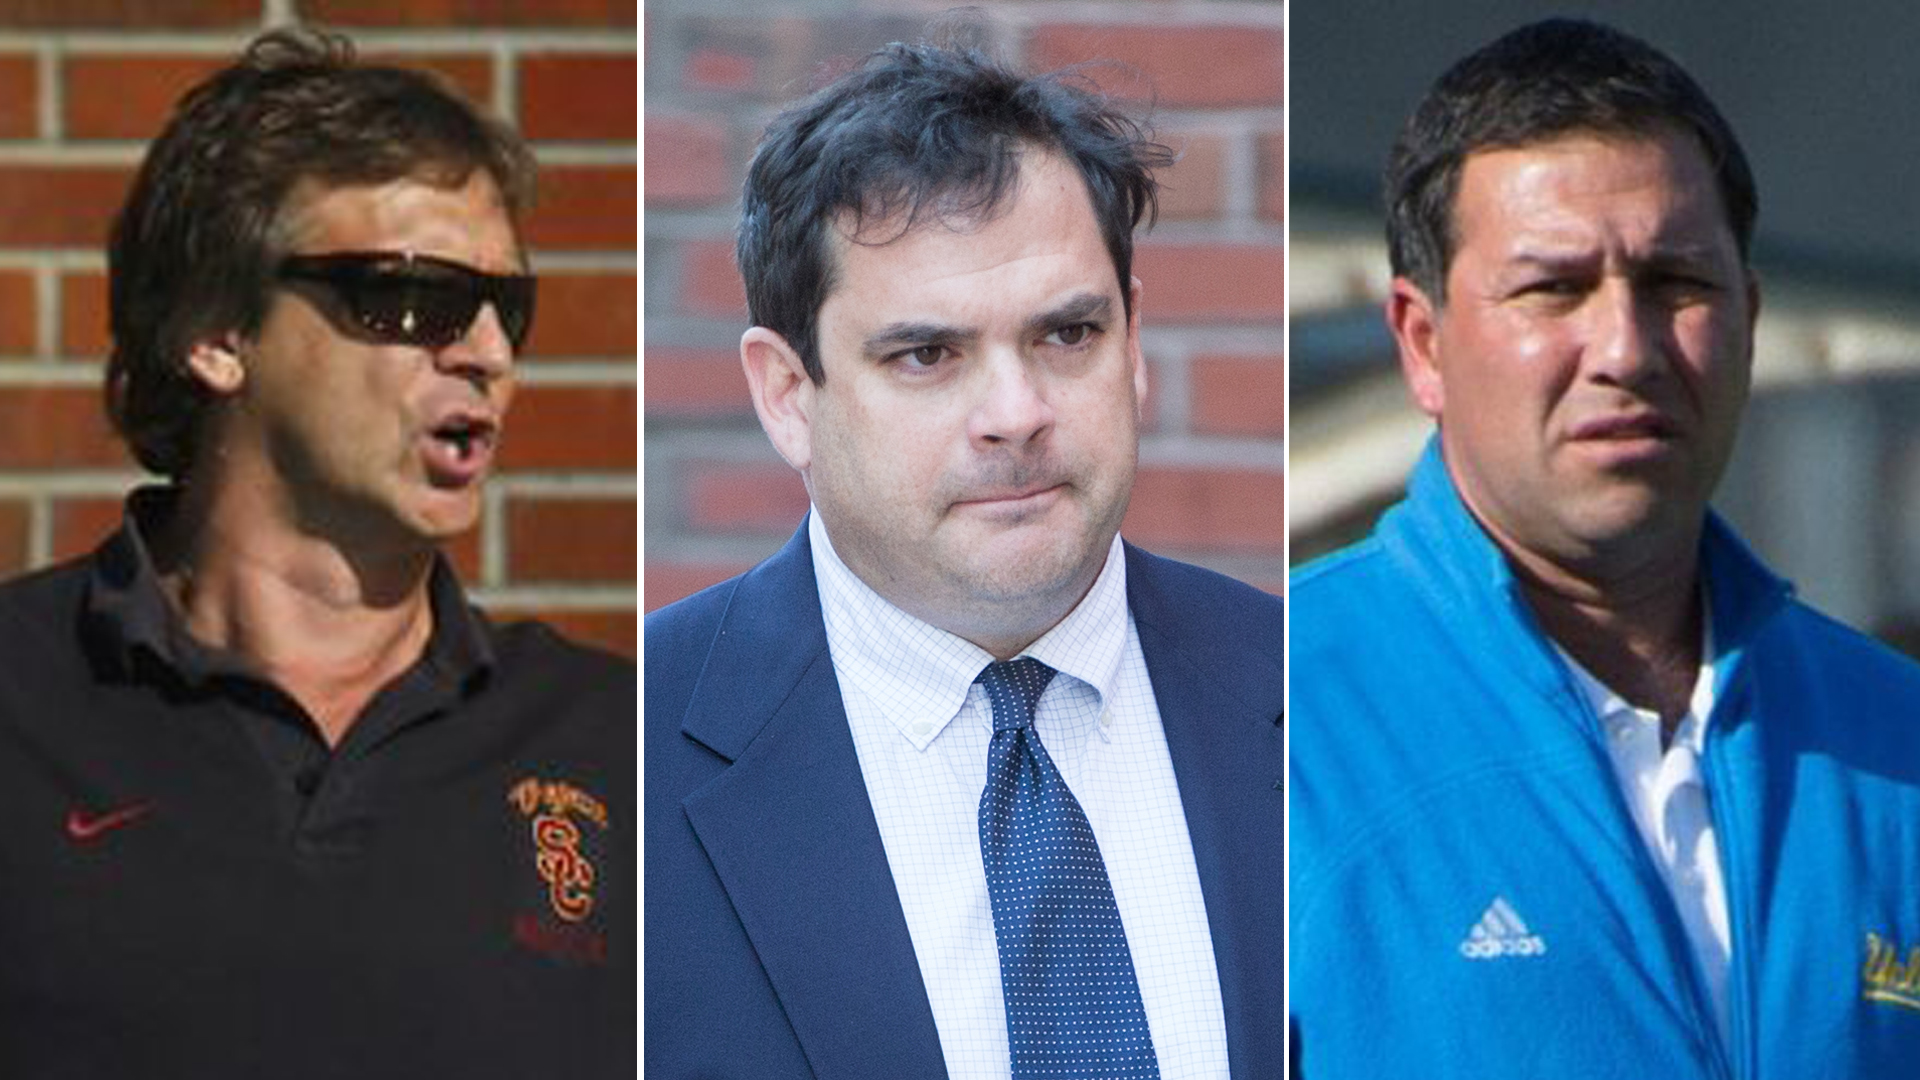 From left: USC water polo coach Jovan Vavic in 2012; Stanford University sailing coach John Vandemoer arrives at federal court in Boston on March 12, 2019; and UCLA men's soccer coach Jorge Salcedo in 2014. (Credit: Los Angeles Times / Getty Images / UCLA Athletics)